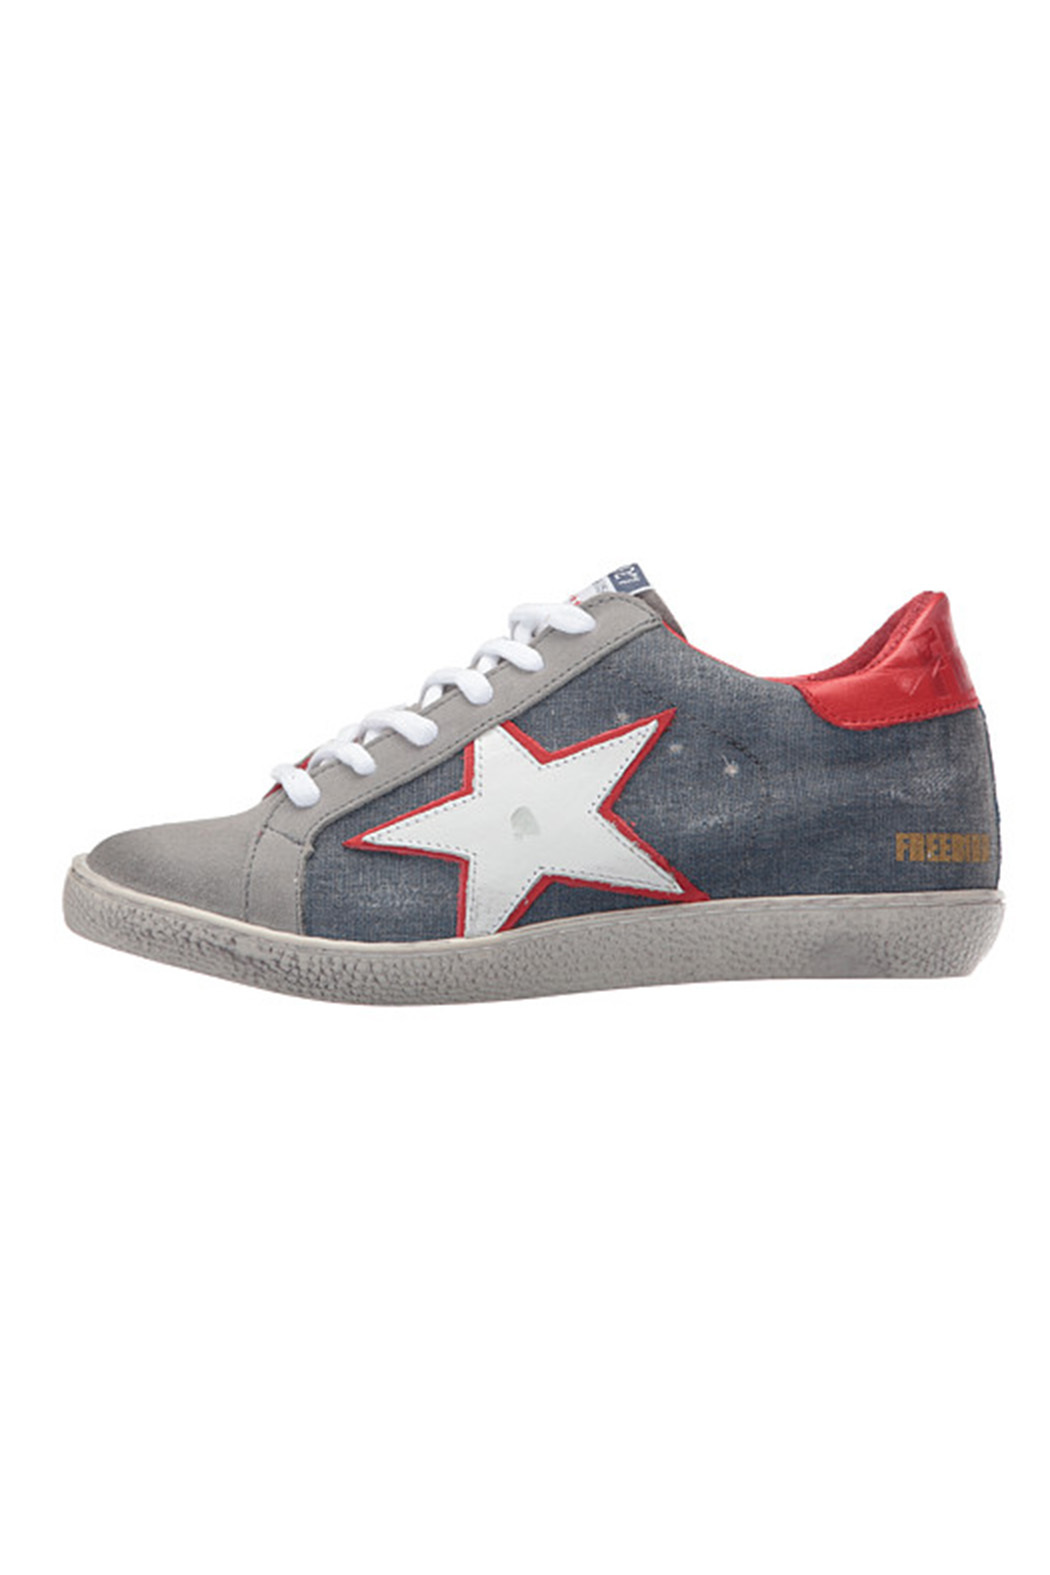 Freebird by Steven Steven Low Top Sneakers - Front Cropped Image